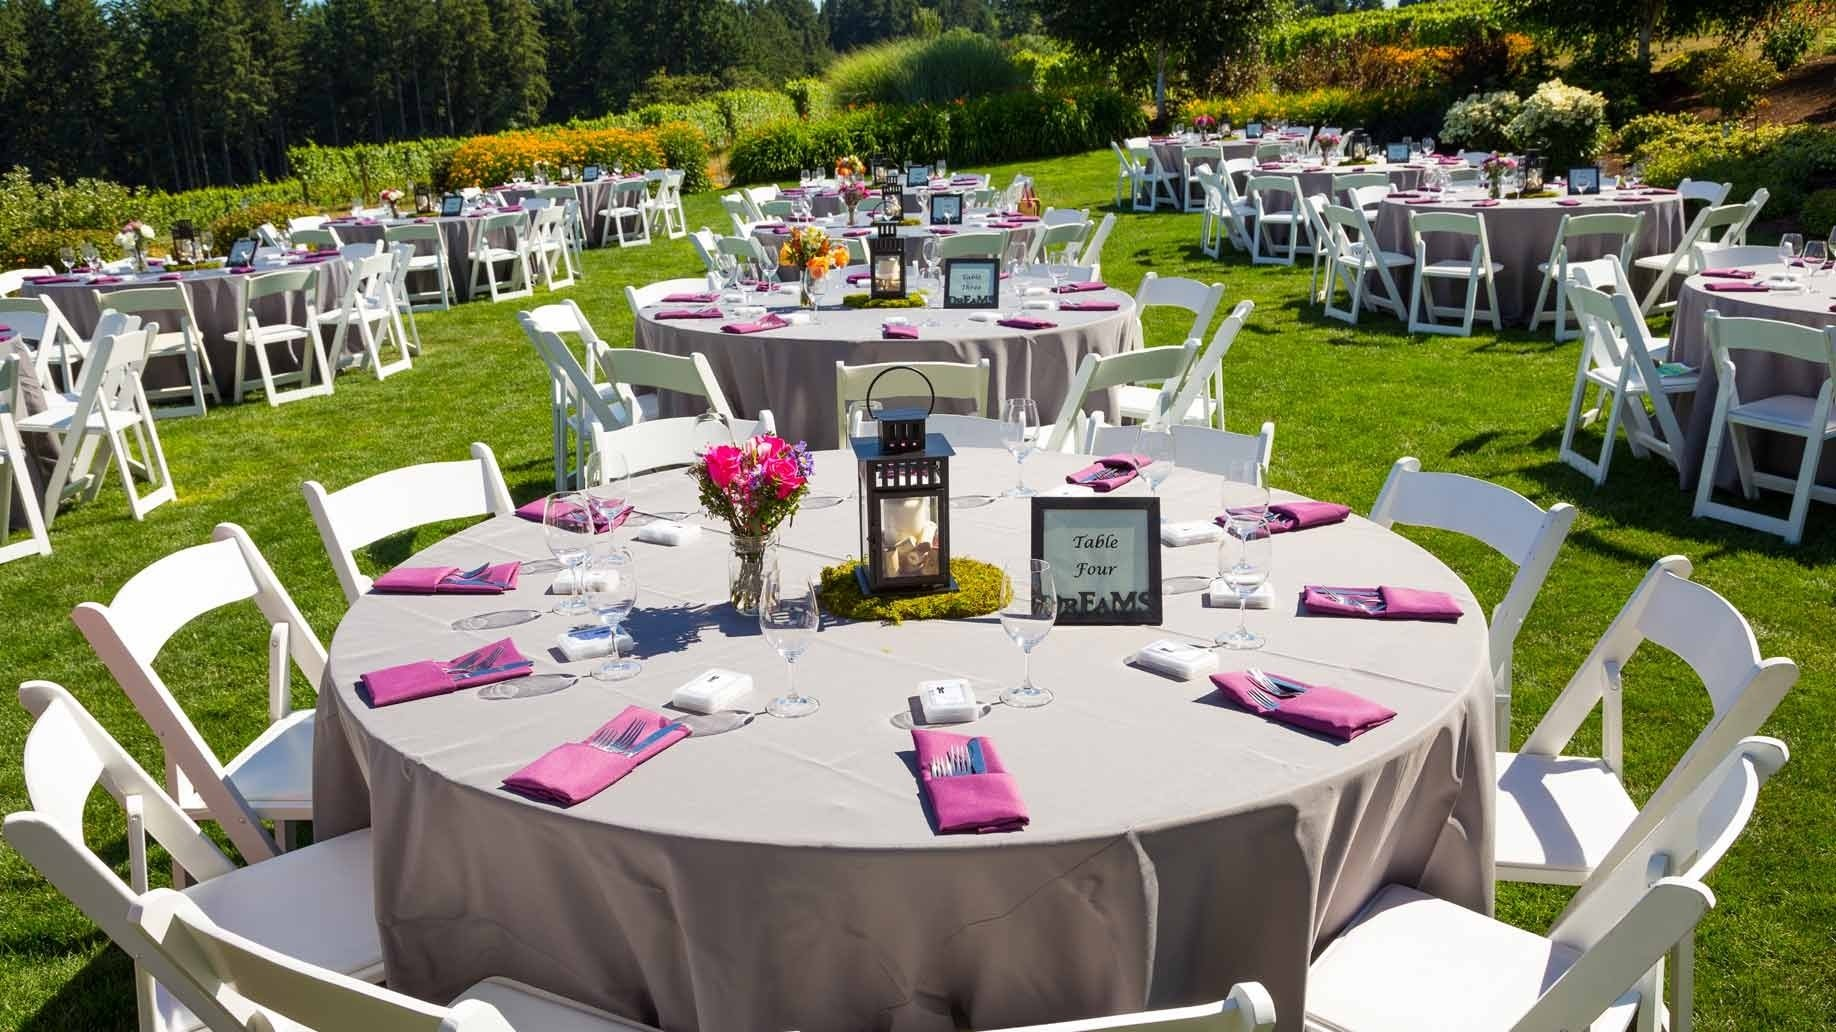 10 Perfect Wedding Ideas On A Tight Budget 16 cheap budget wedding venue ideas for the ceremony reception 2020